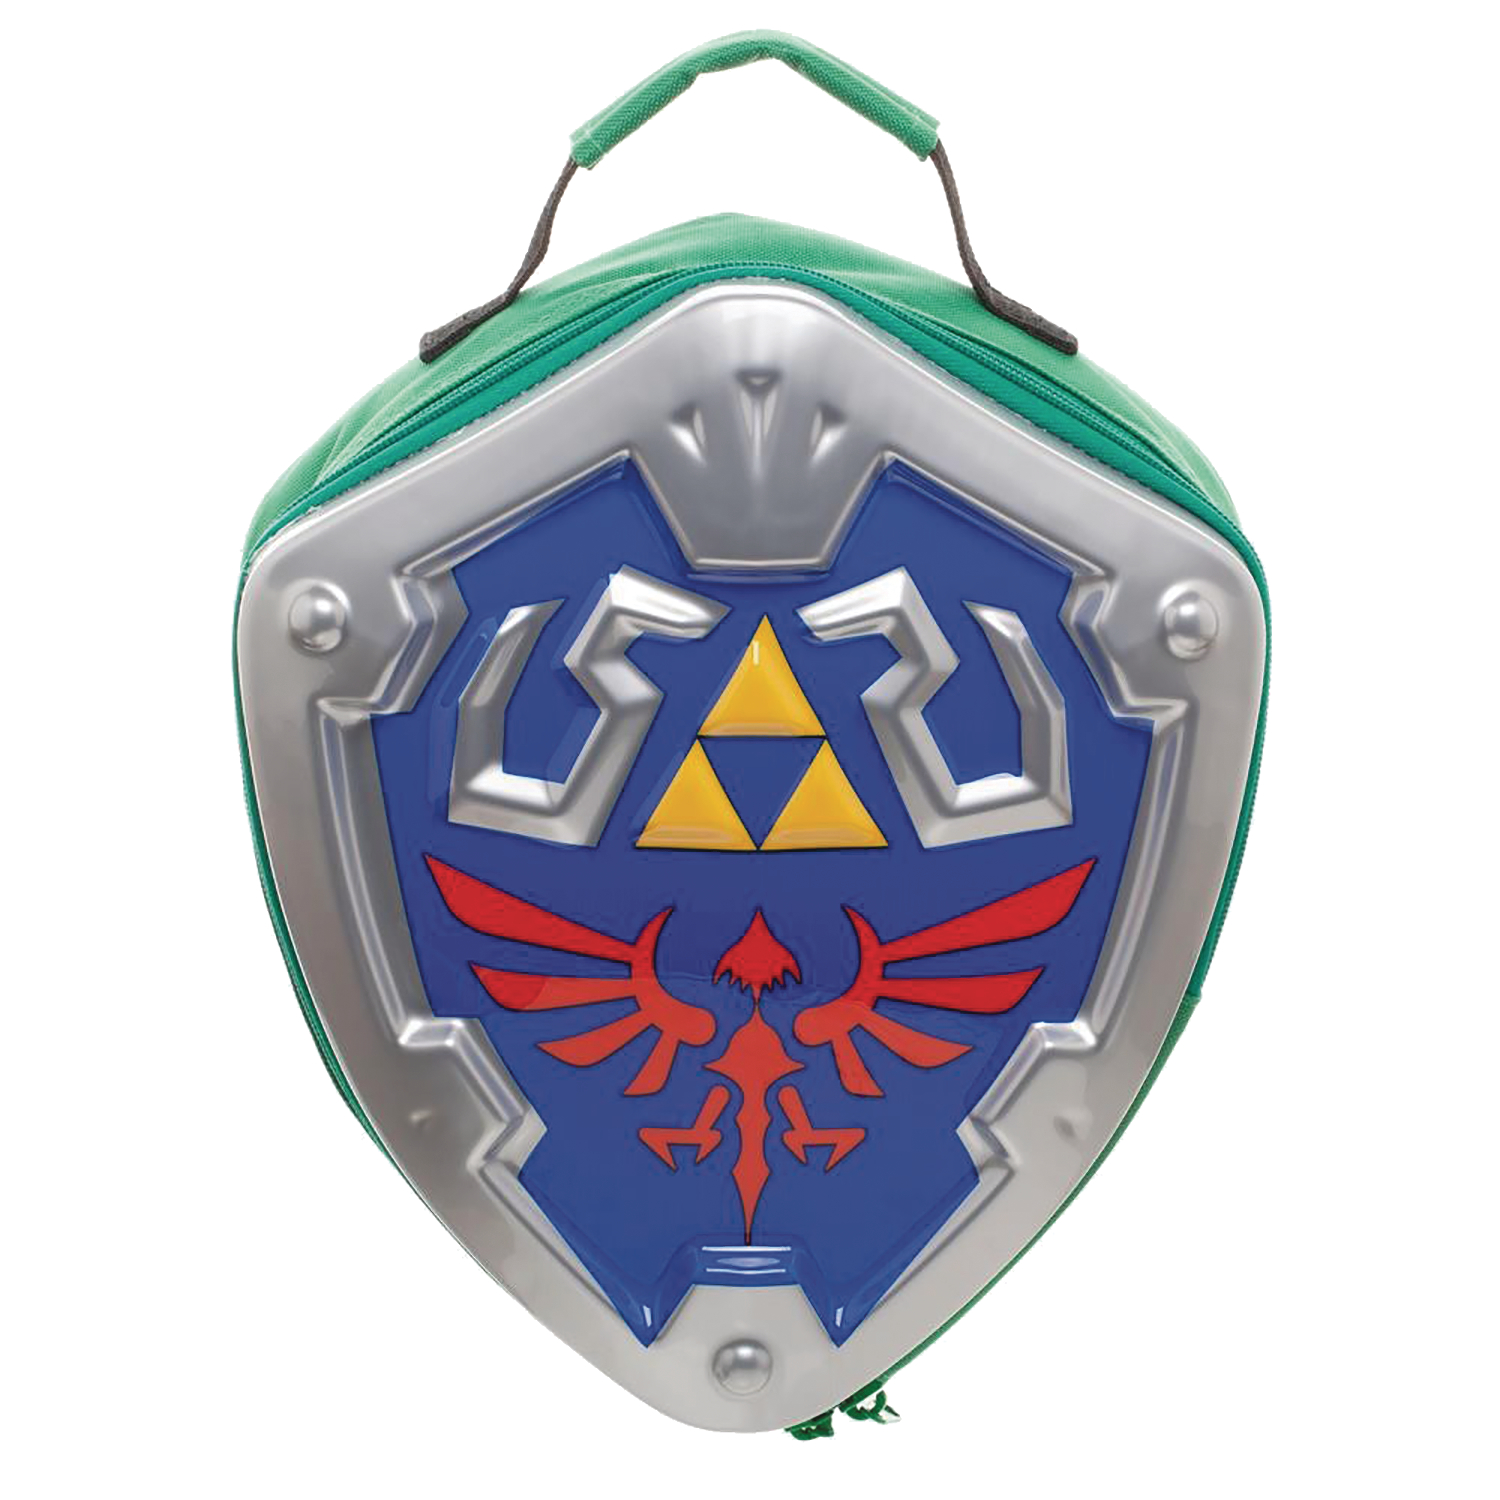 LOZ SKYWARD SWORD LINK HYLIAN SHIELD MOLDED LUNCH BOX